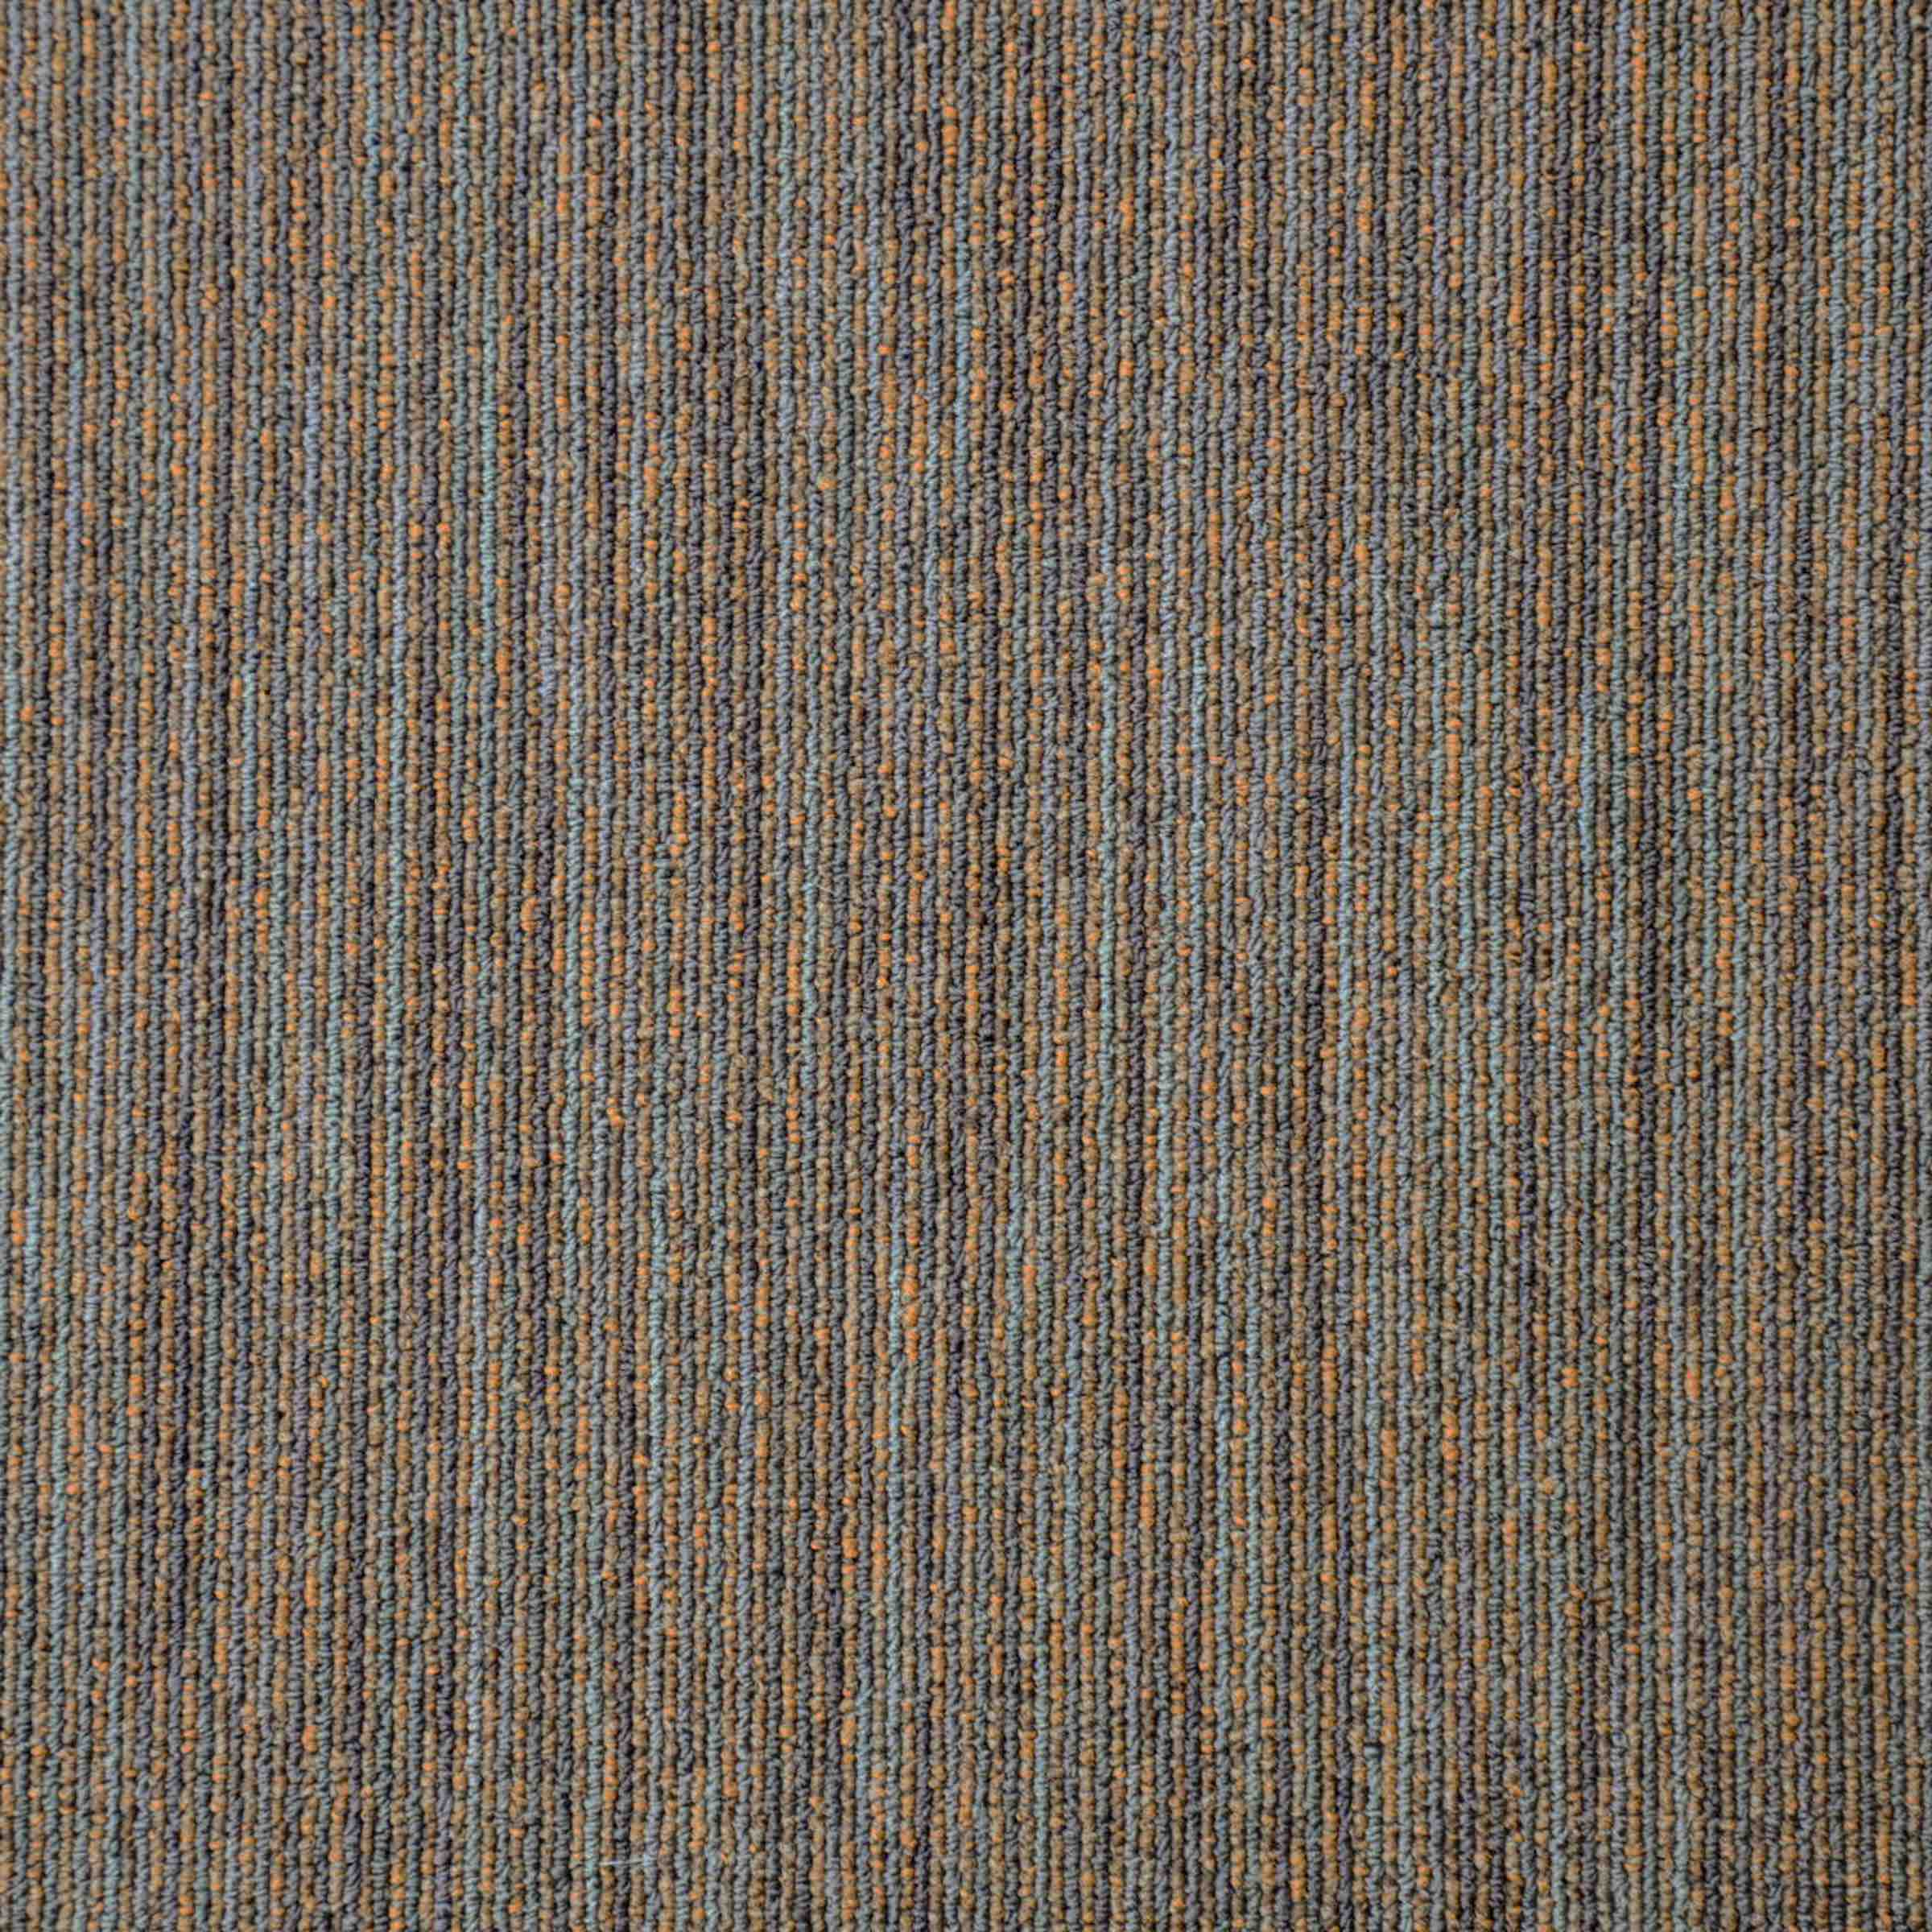 Workspace Linear | Beauchamp Brown | Paragon Carpet Tiles | Commercial Carpet Tiles